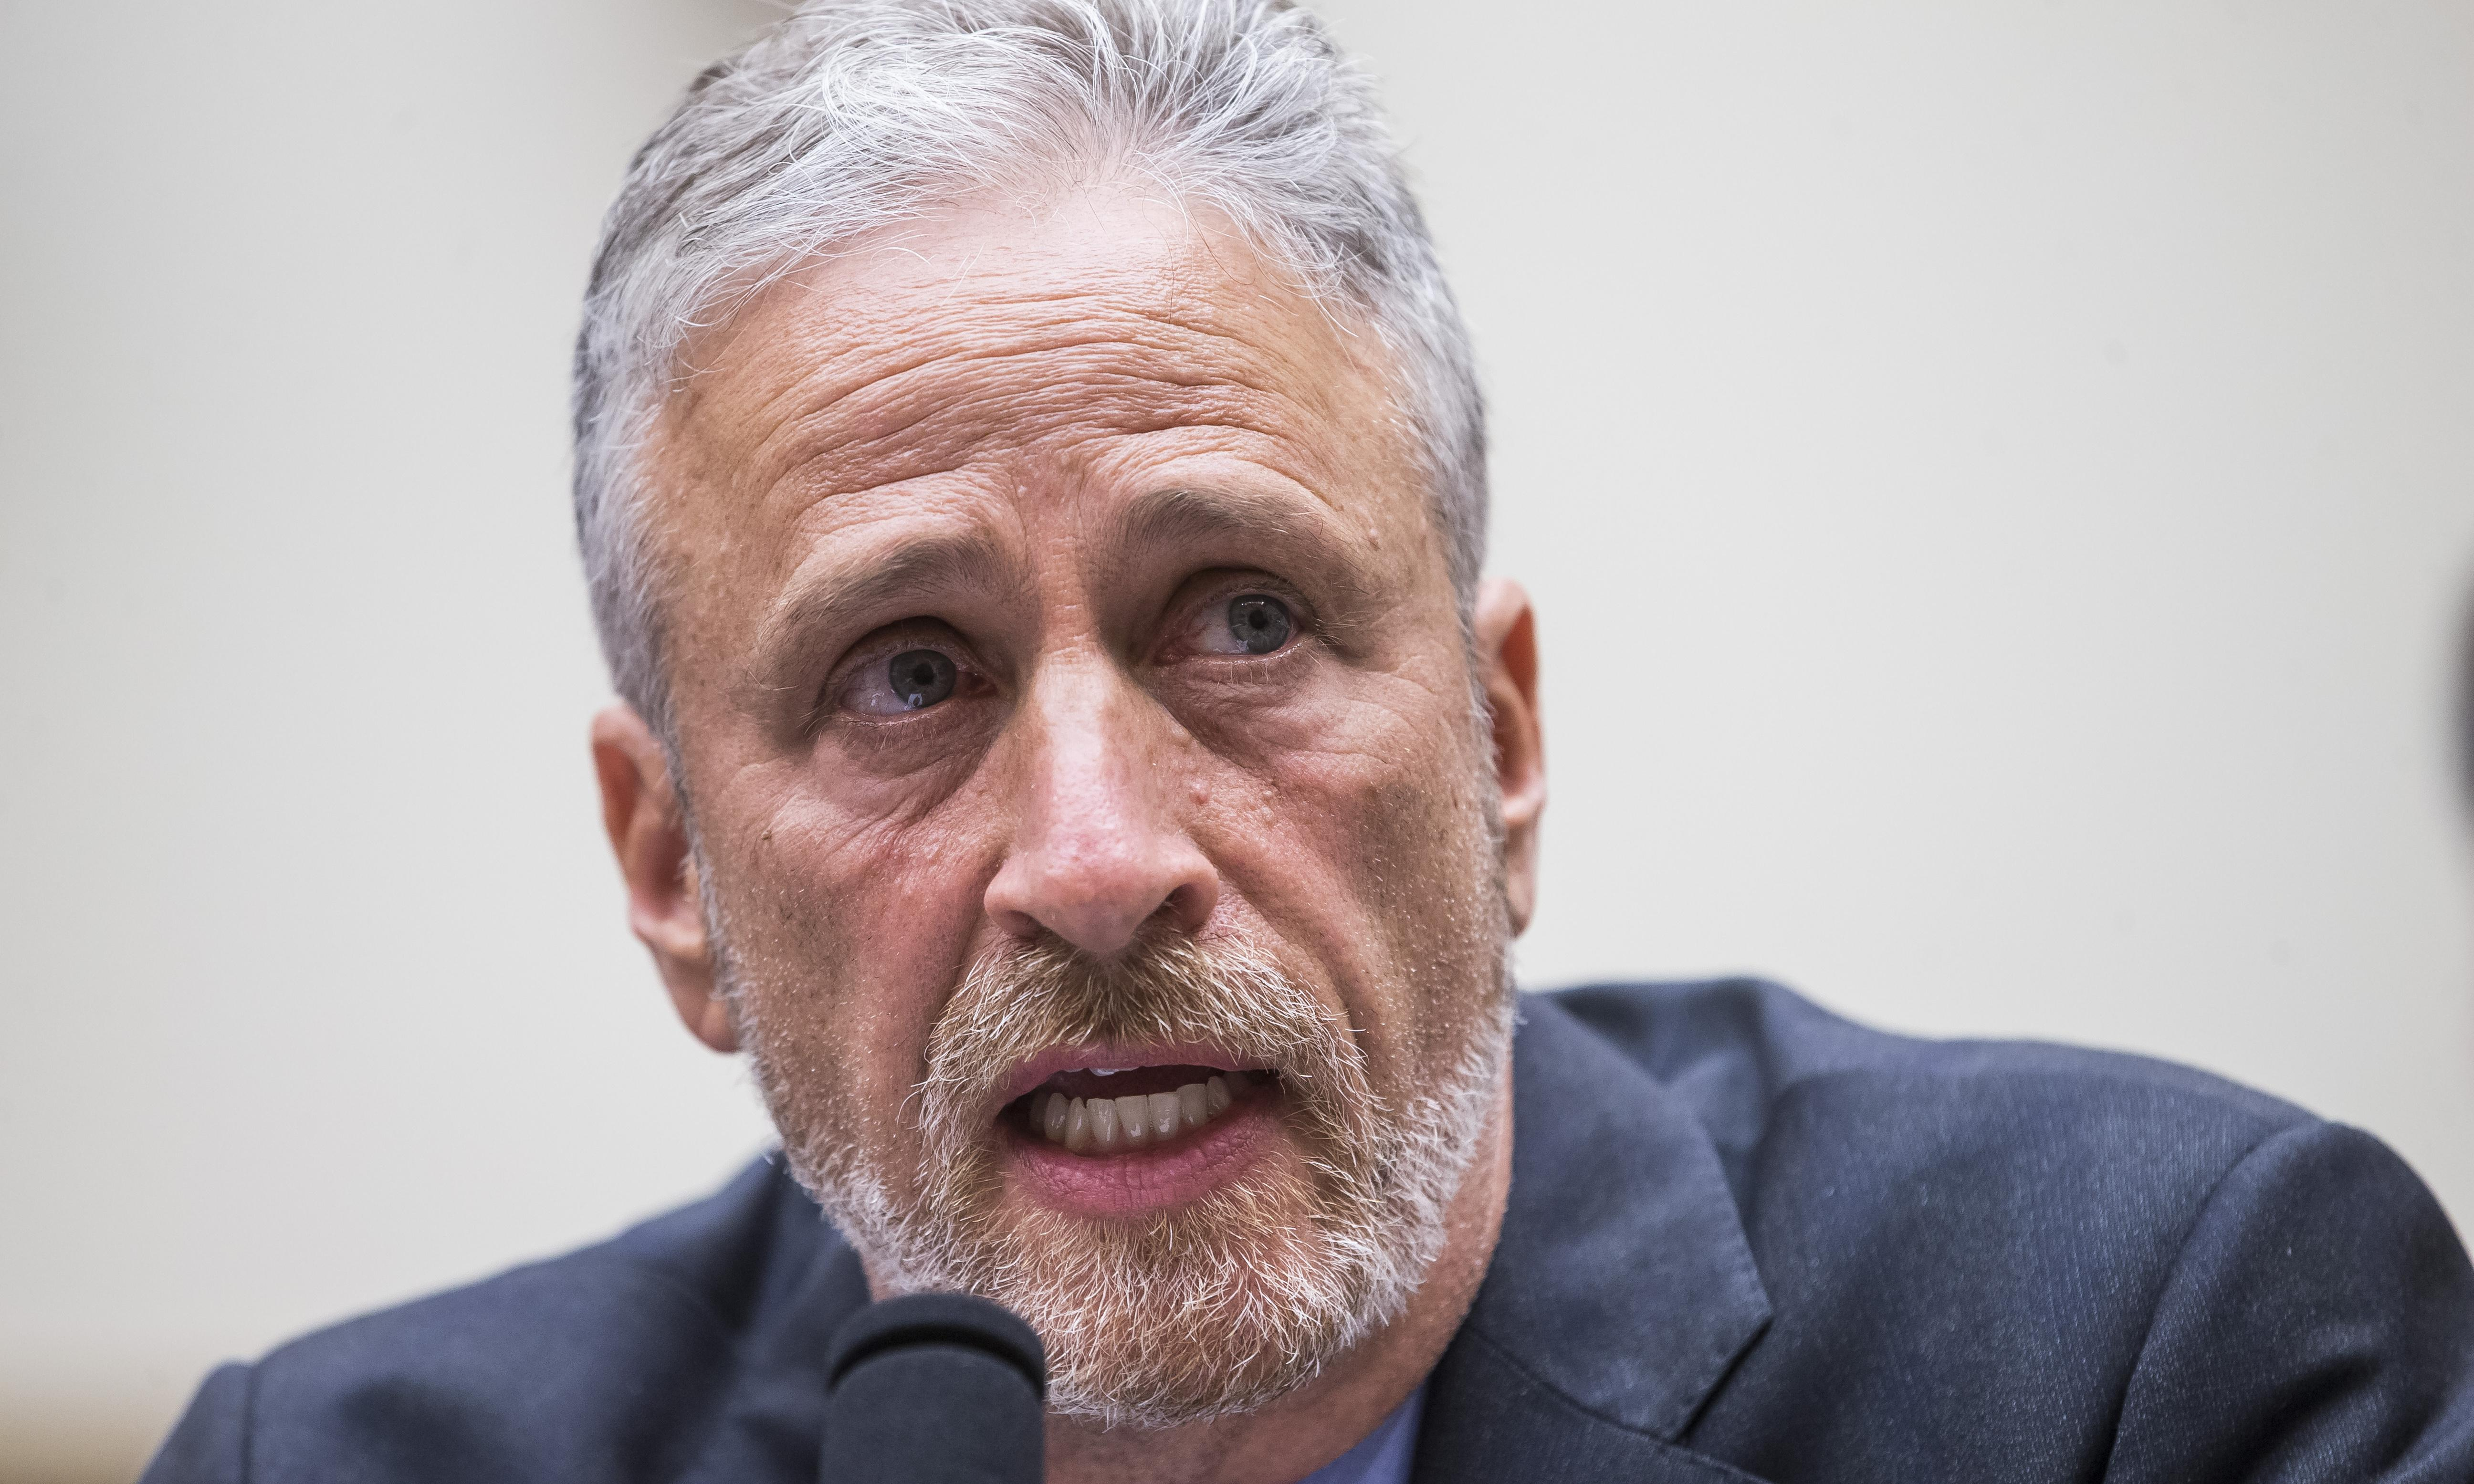 Jon Stewart fires back at Mitch McConnell over 9/11 victims fund bill